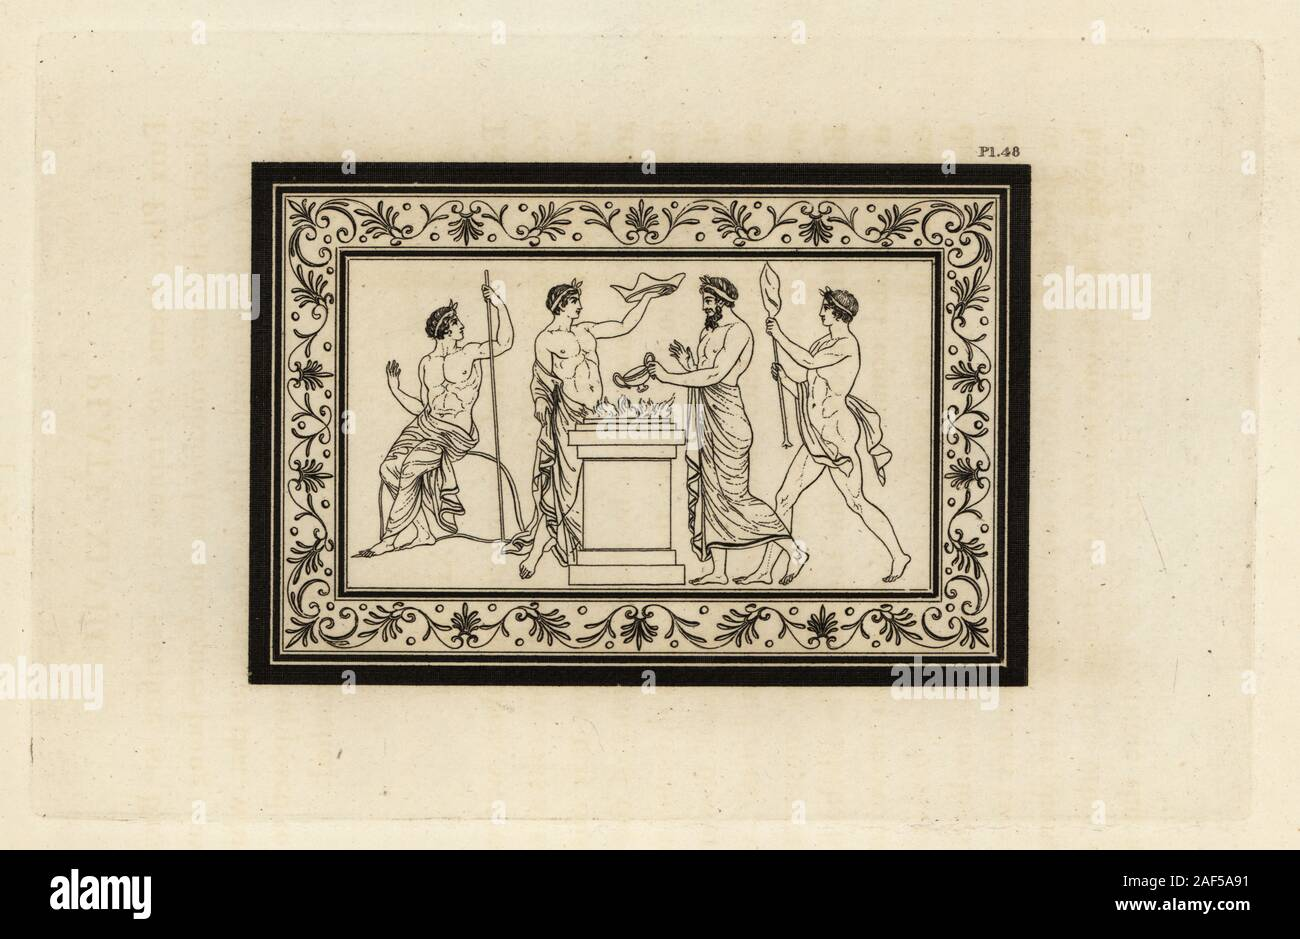 Ancient Roman sacrifice to Bacchus. A priest prepares a libation on the altar. Copperplate engraving by Thomas Kirk (1765-1797)  from Sir William Hamilton's Outlines from the Figures and Compositions upon the Greek, Roman and Etruscan Vases of the Late Sir Hamilton, T. M'Lean, London, 1834. Stock Photo